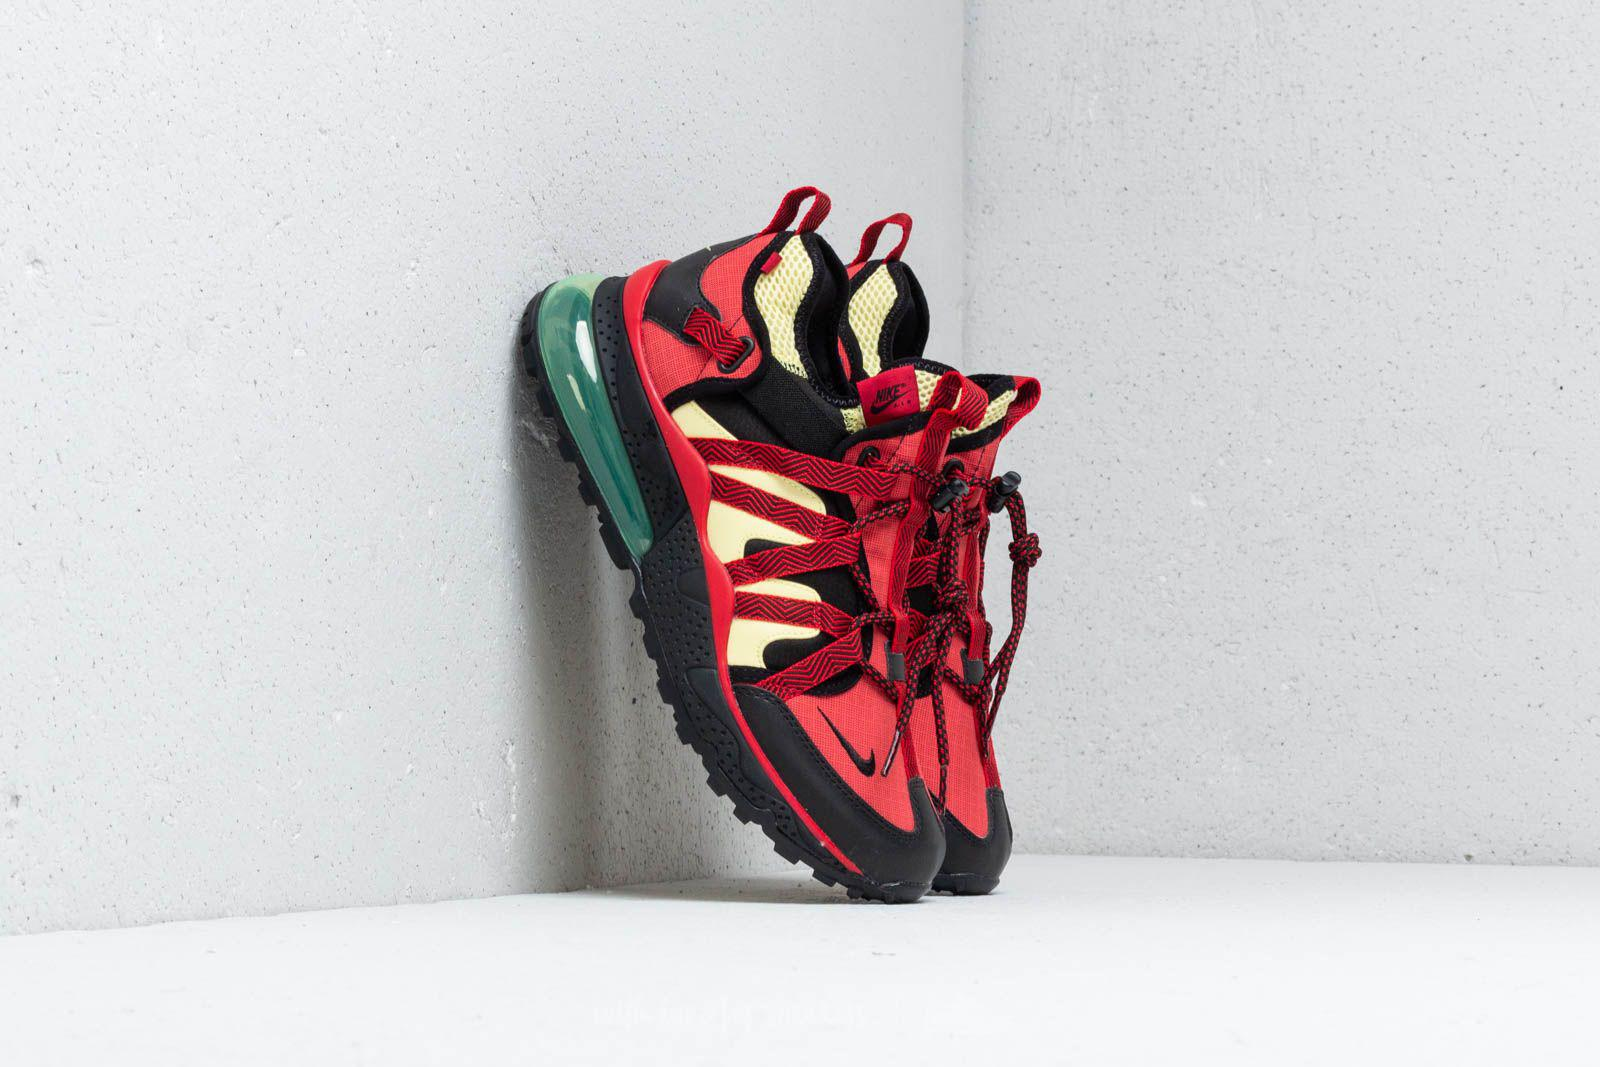 1abc02129feb Lyst - Nike Air Max 270 Bowfin Black  Black-university Red in Red ...